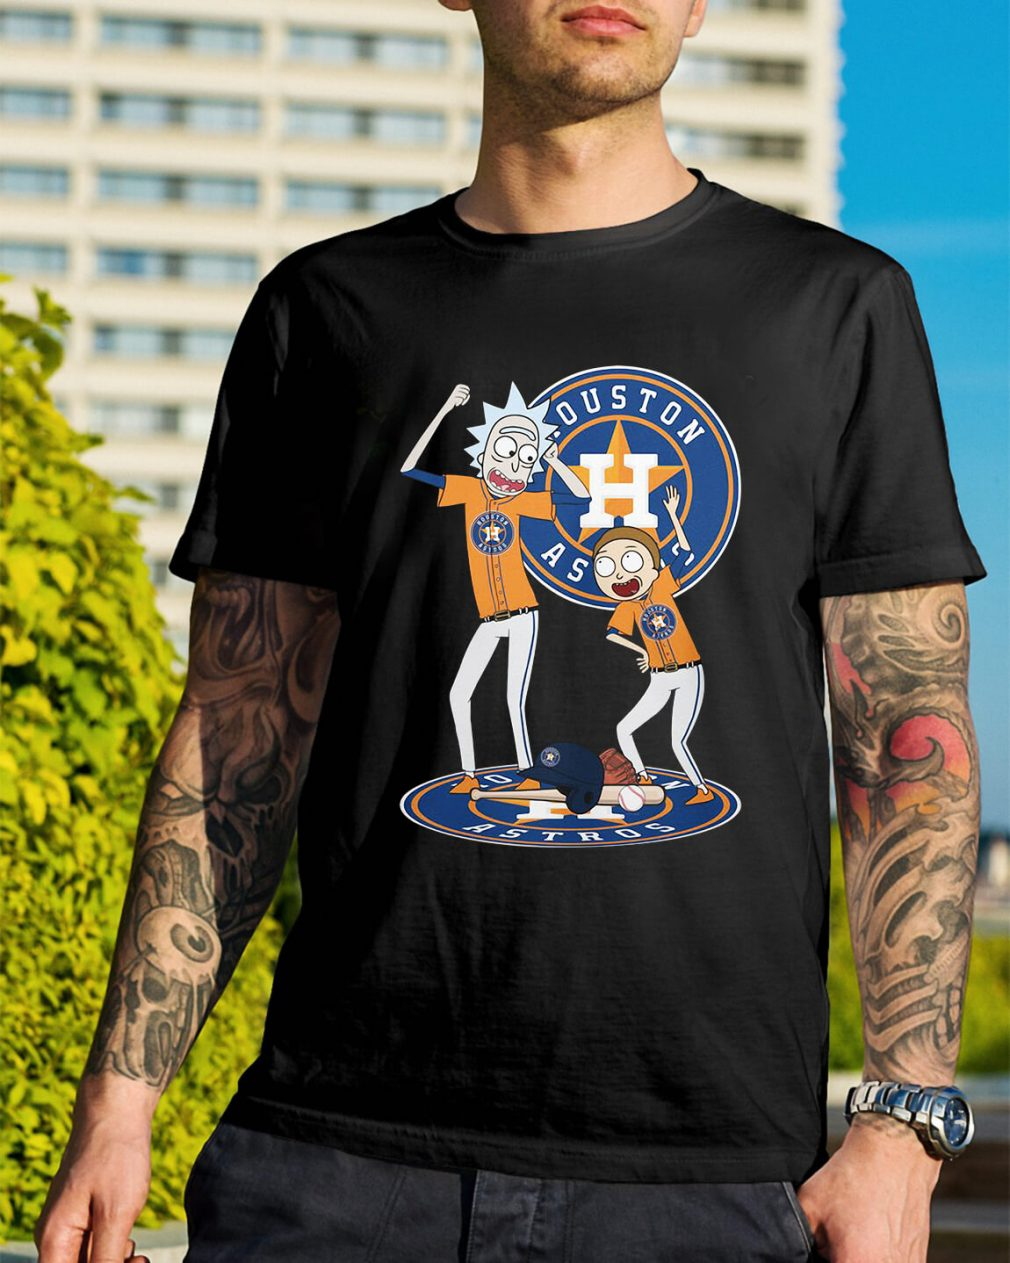 Rick and Morty Houston Astros shirt